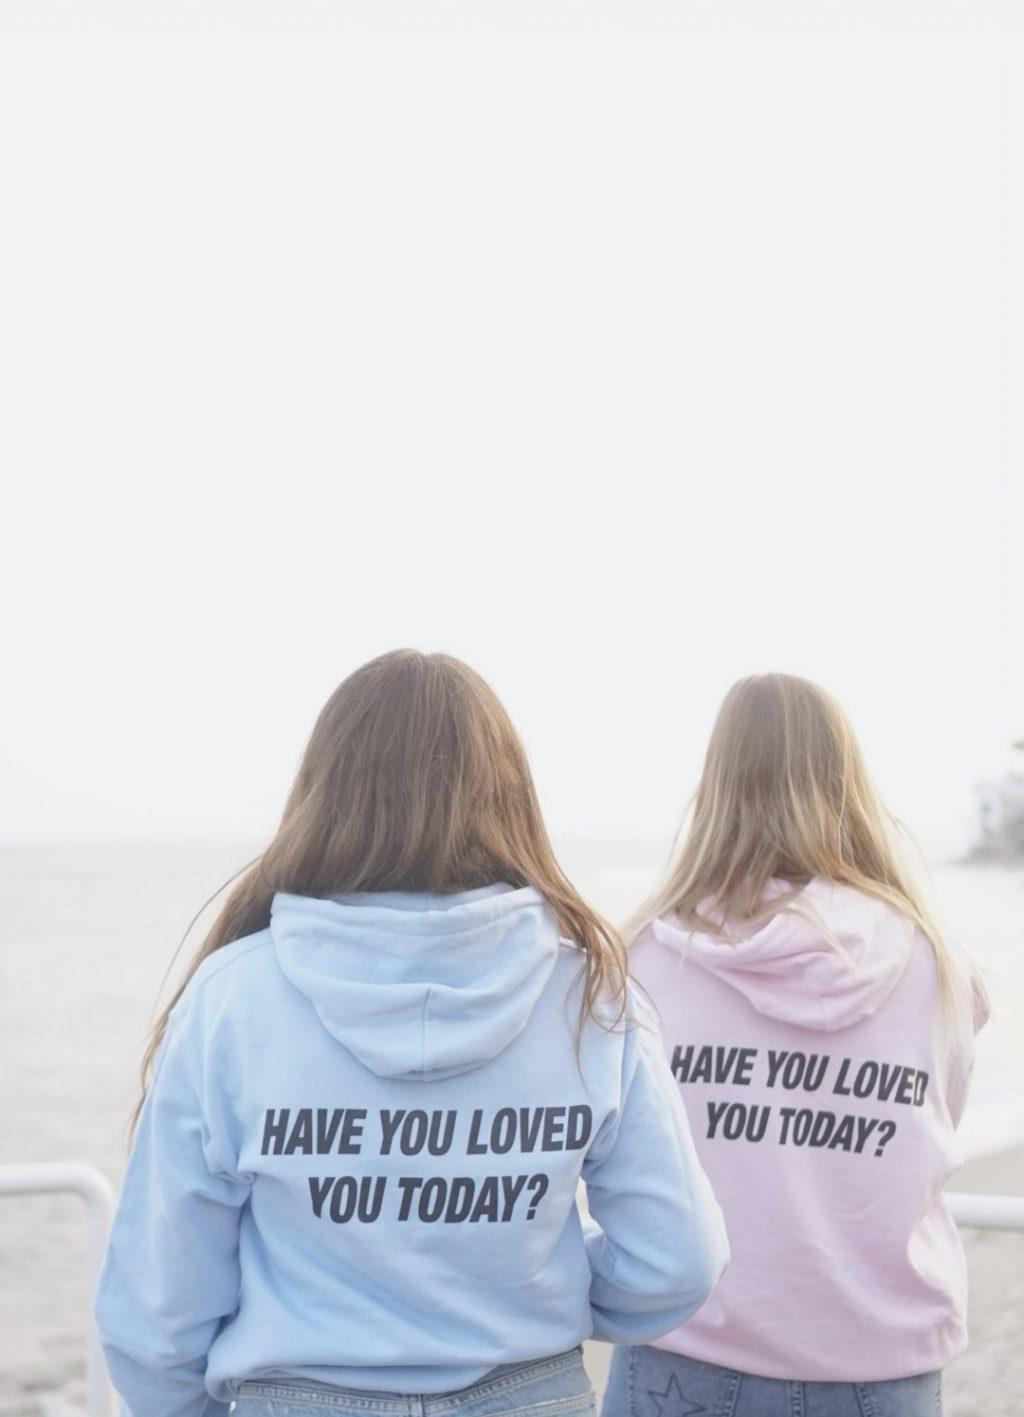 """Sophomores Blakely Huff (left) and Clare Cornelius (right) promote Gearhart&squot;s new company in her """"Have you loved today?"""" sweatshirts in September at Ralphs Beach in Malibu. Gearhart said her main mission is to spread self-love and positivity with her company."""